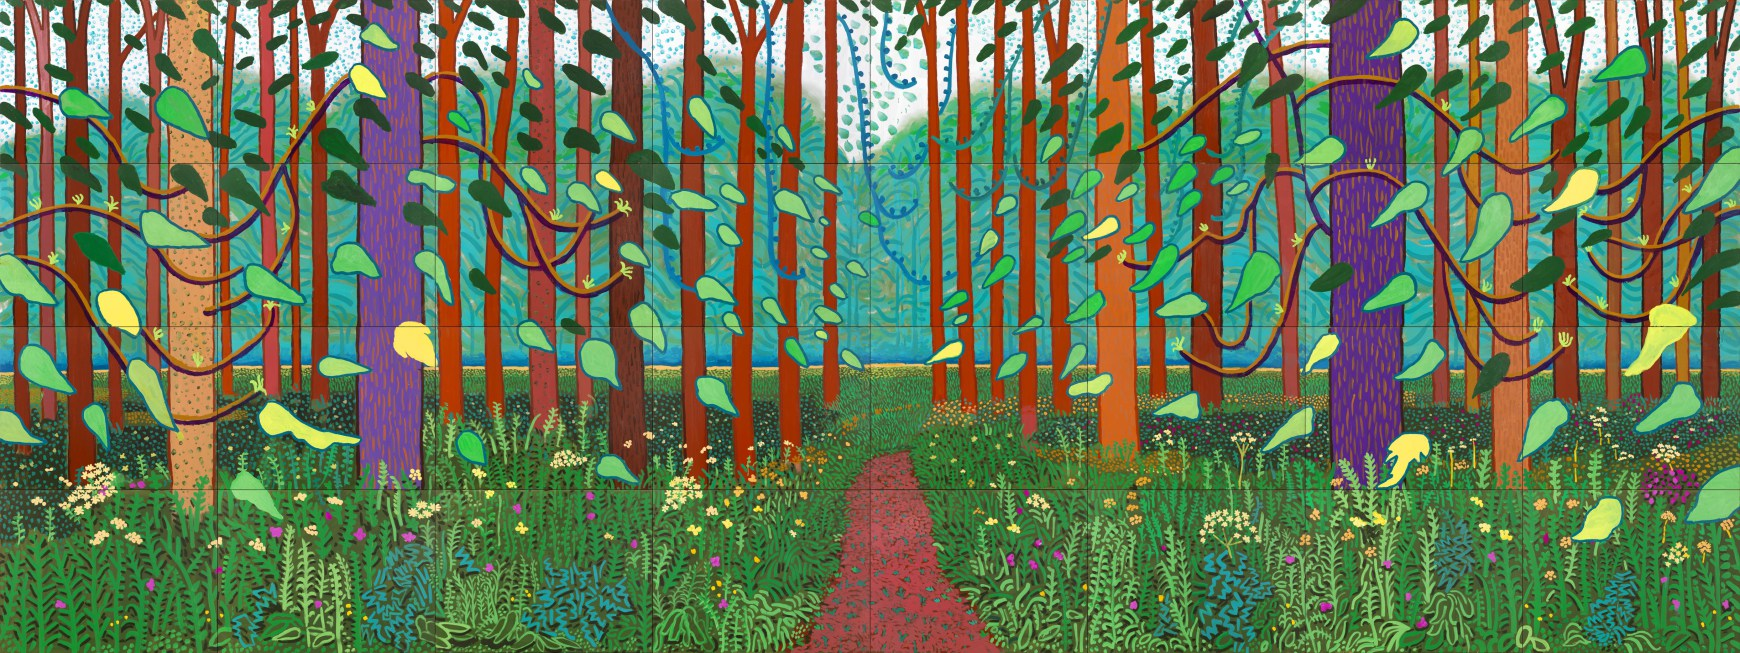 The Arrival of Spring in Woldgate, East Yorkshire, in 2011 by David Hockney